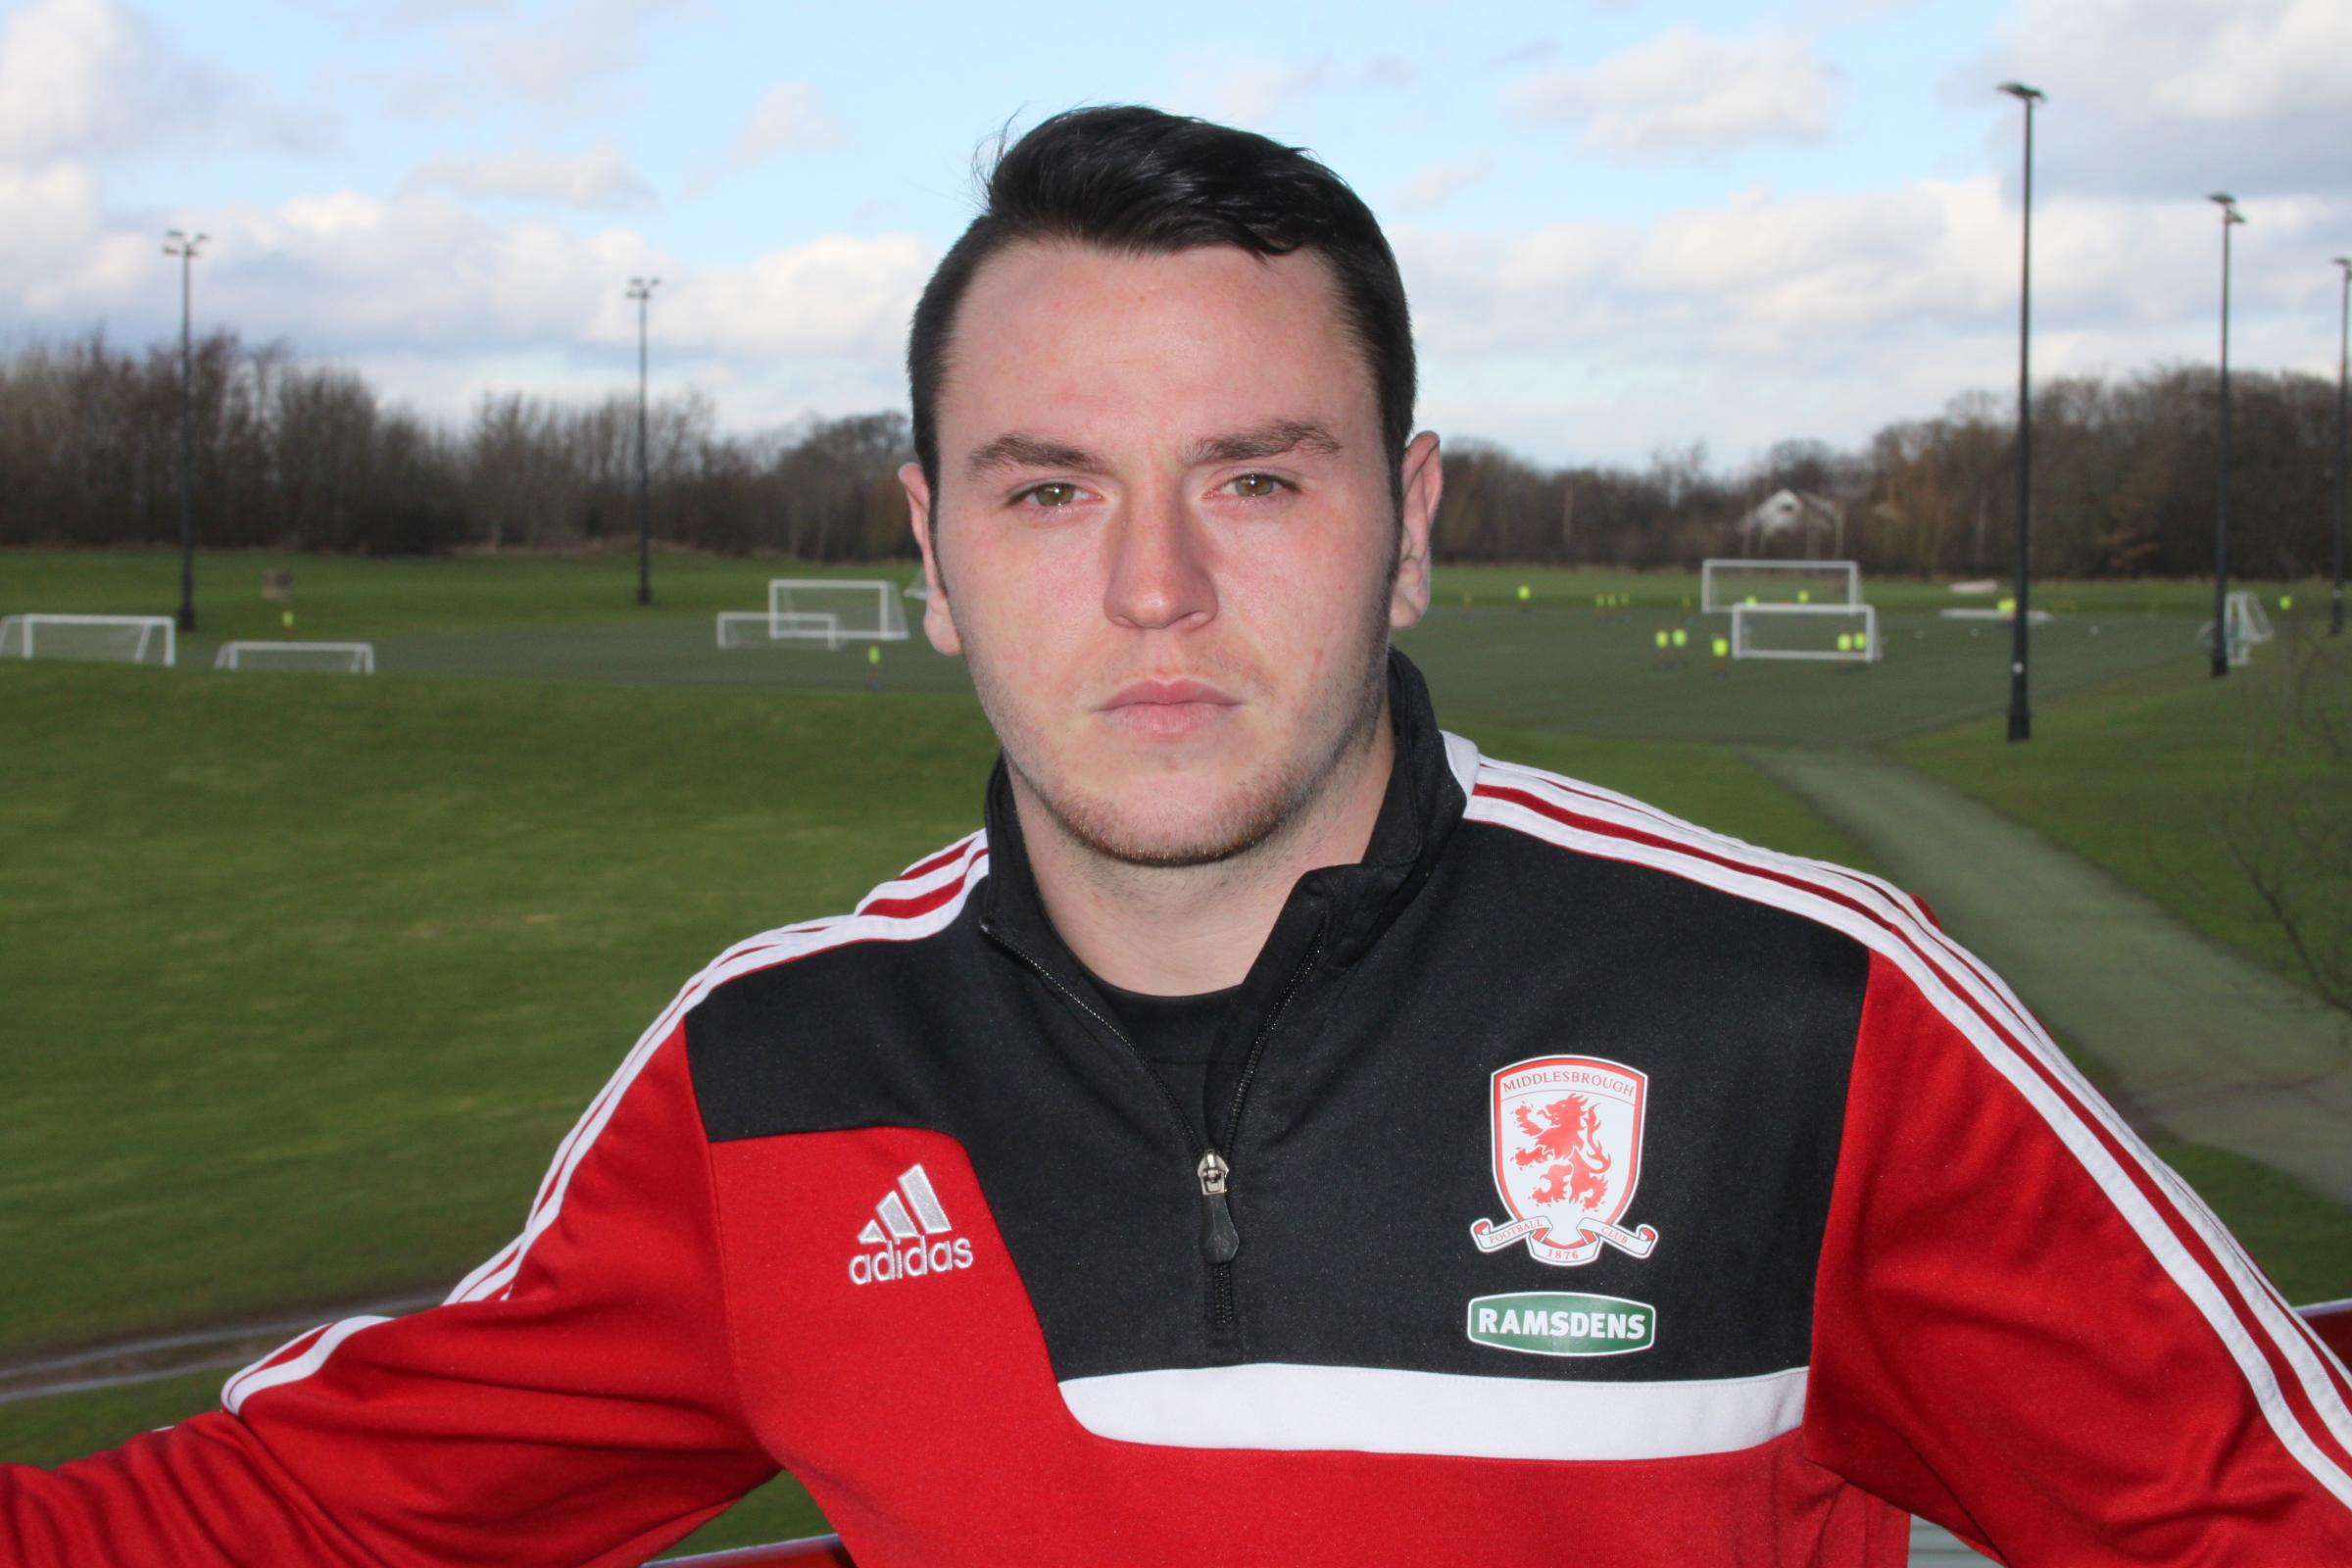 BRACE: Lee Tomlin scored twice in Middlesbrough's 3-1 win over Barnsley